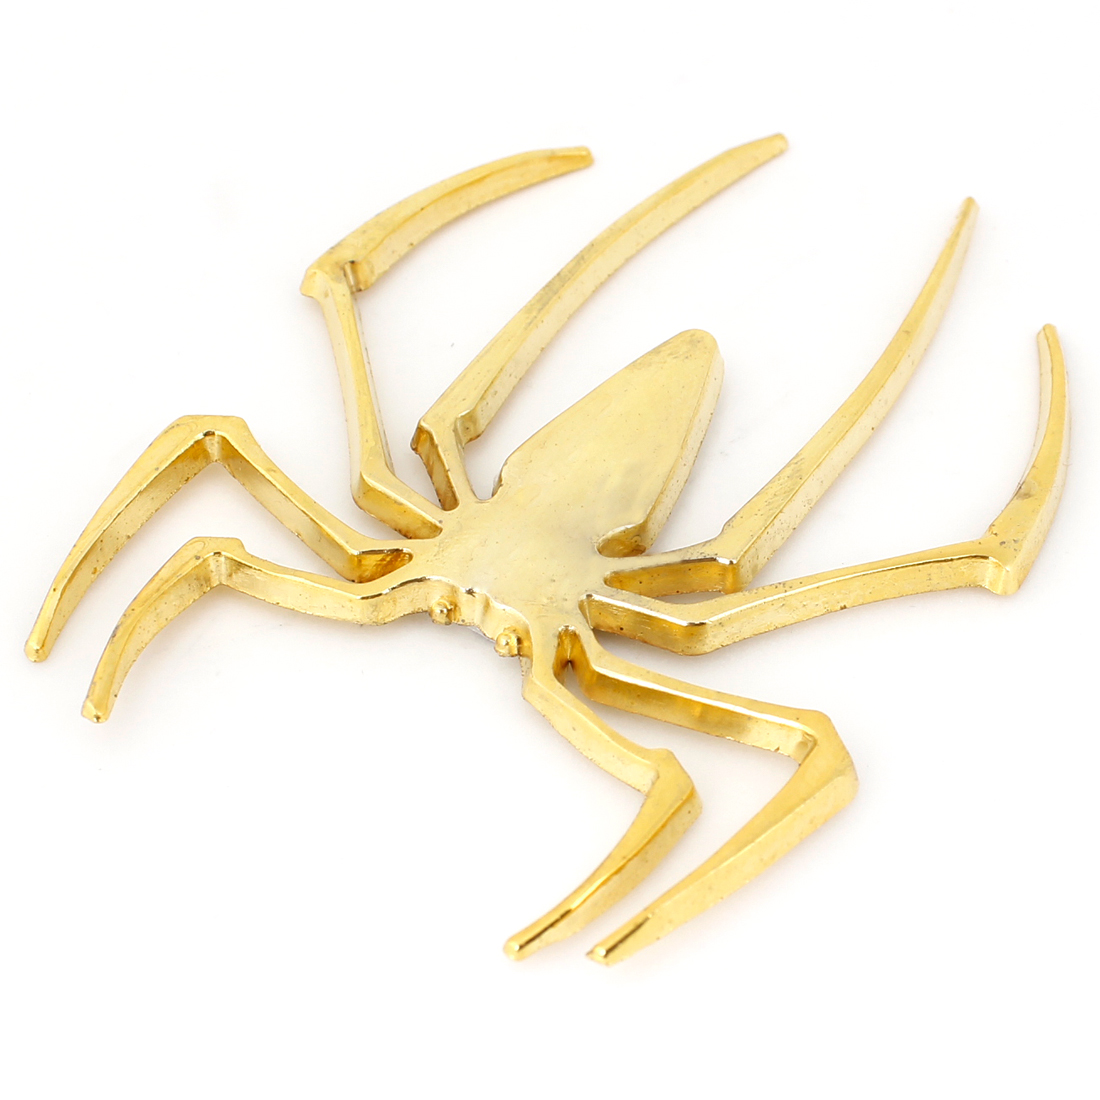 Gold Tone Metal 3D Spider Shaped Sticker Badge Decor for Auto